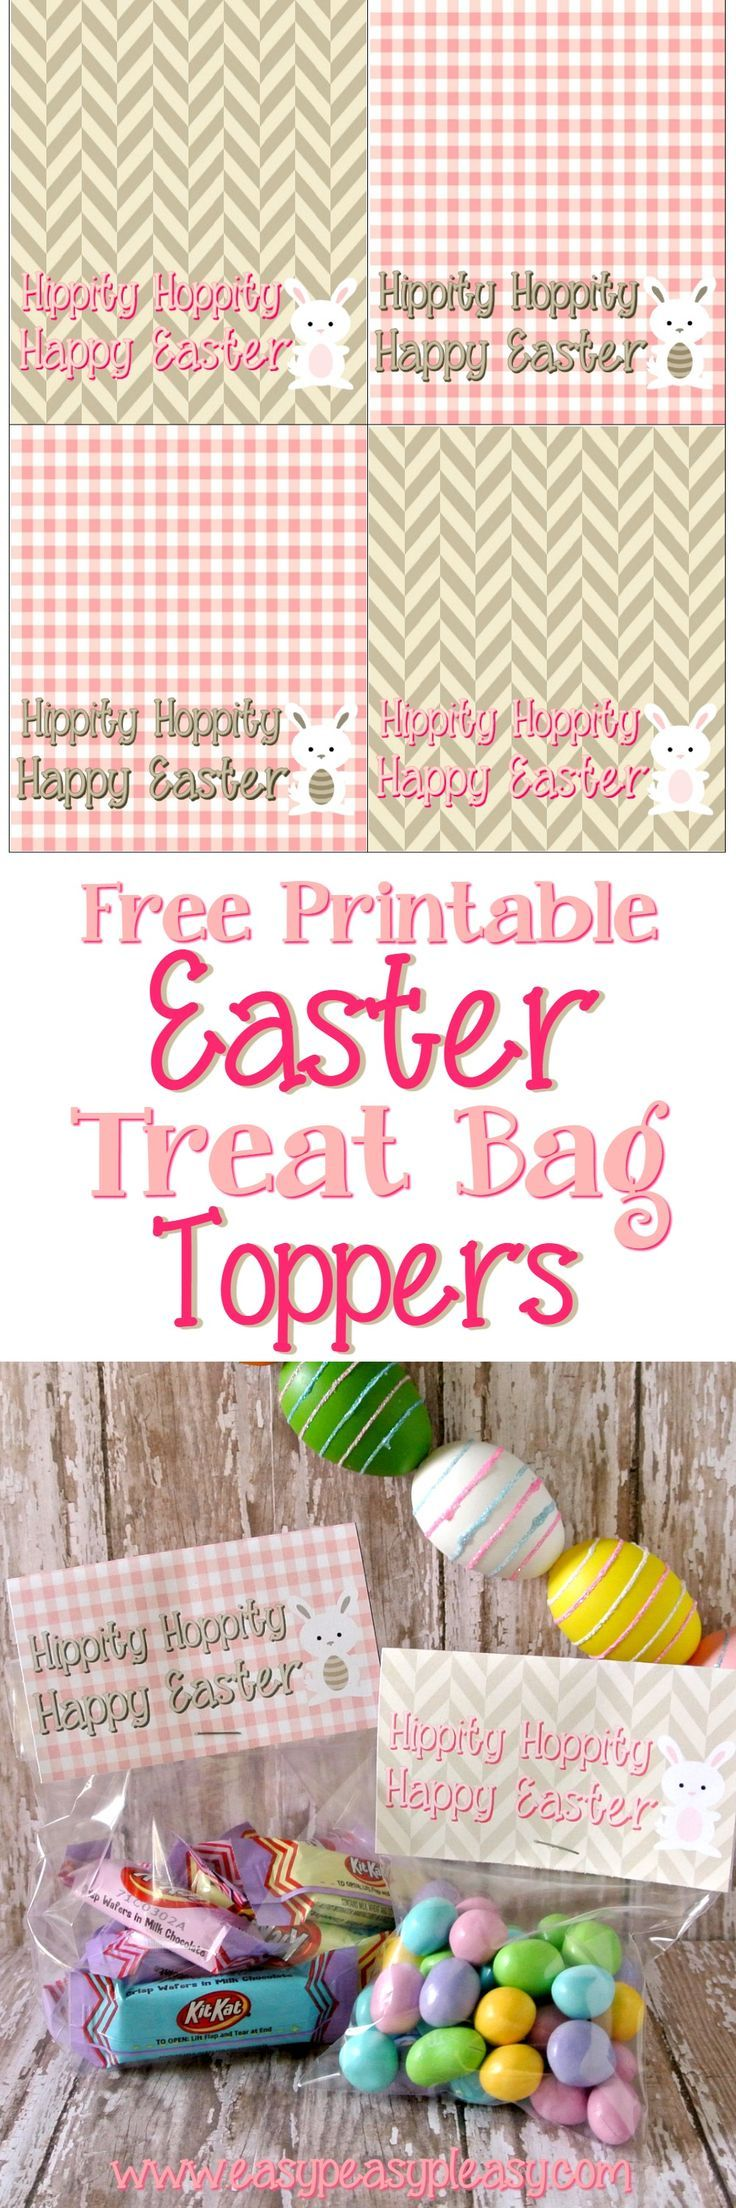 Free Printable Easter Treat Bag Toppers   – Easter tags